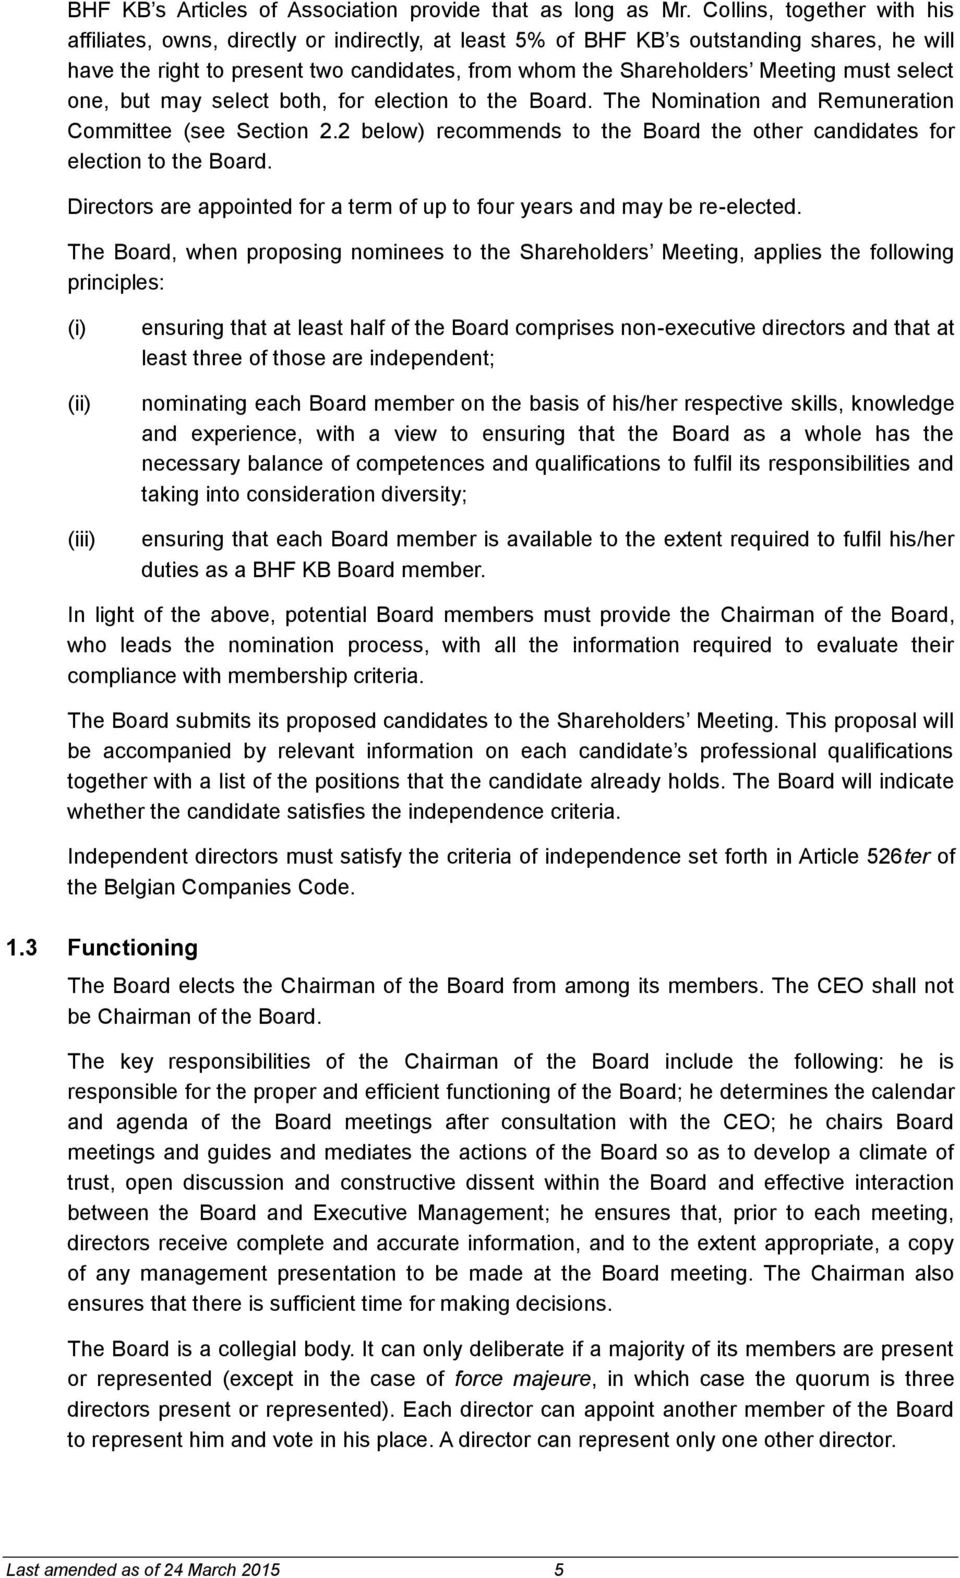 must select one, but may select both, for election to the Board. The Nomination and Remuneration Committee (see Section 2.